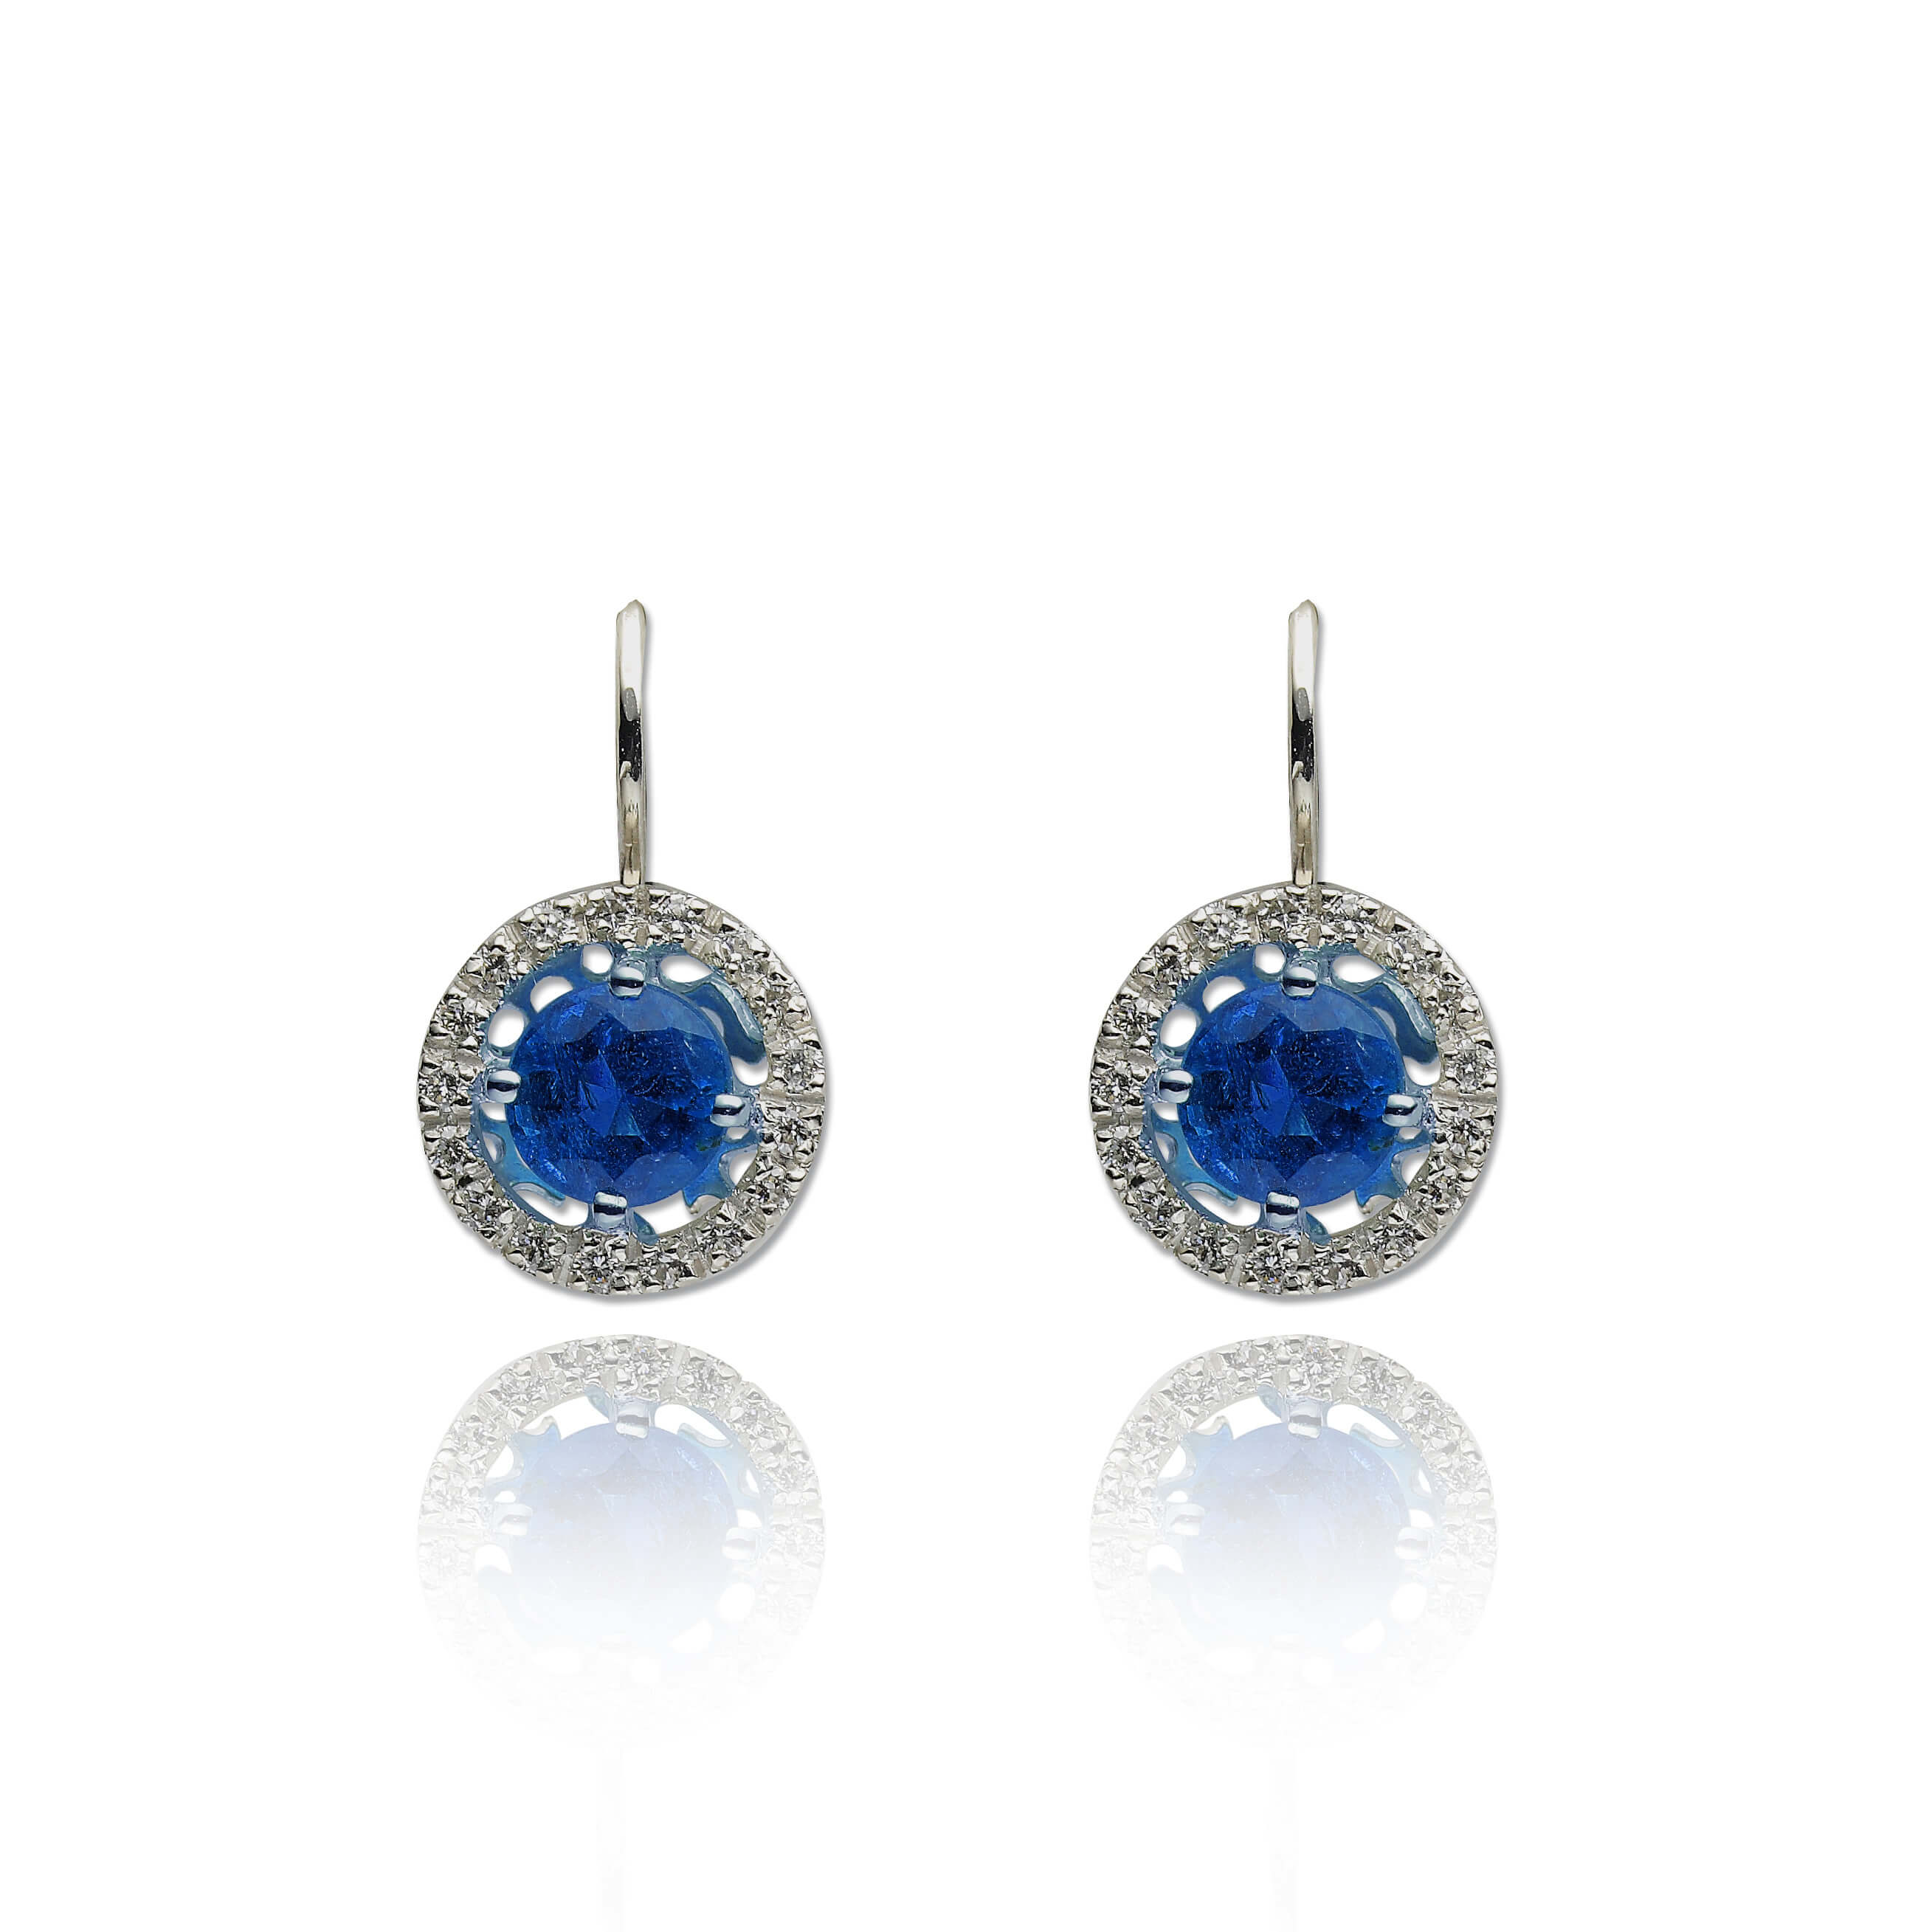 diamant 0,01 ct - 34x, plavi safir 6 mm - 2x